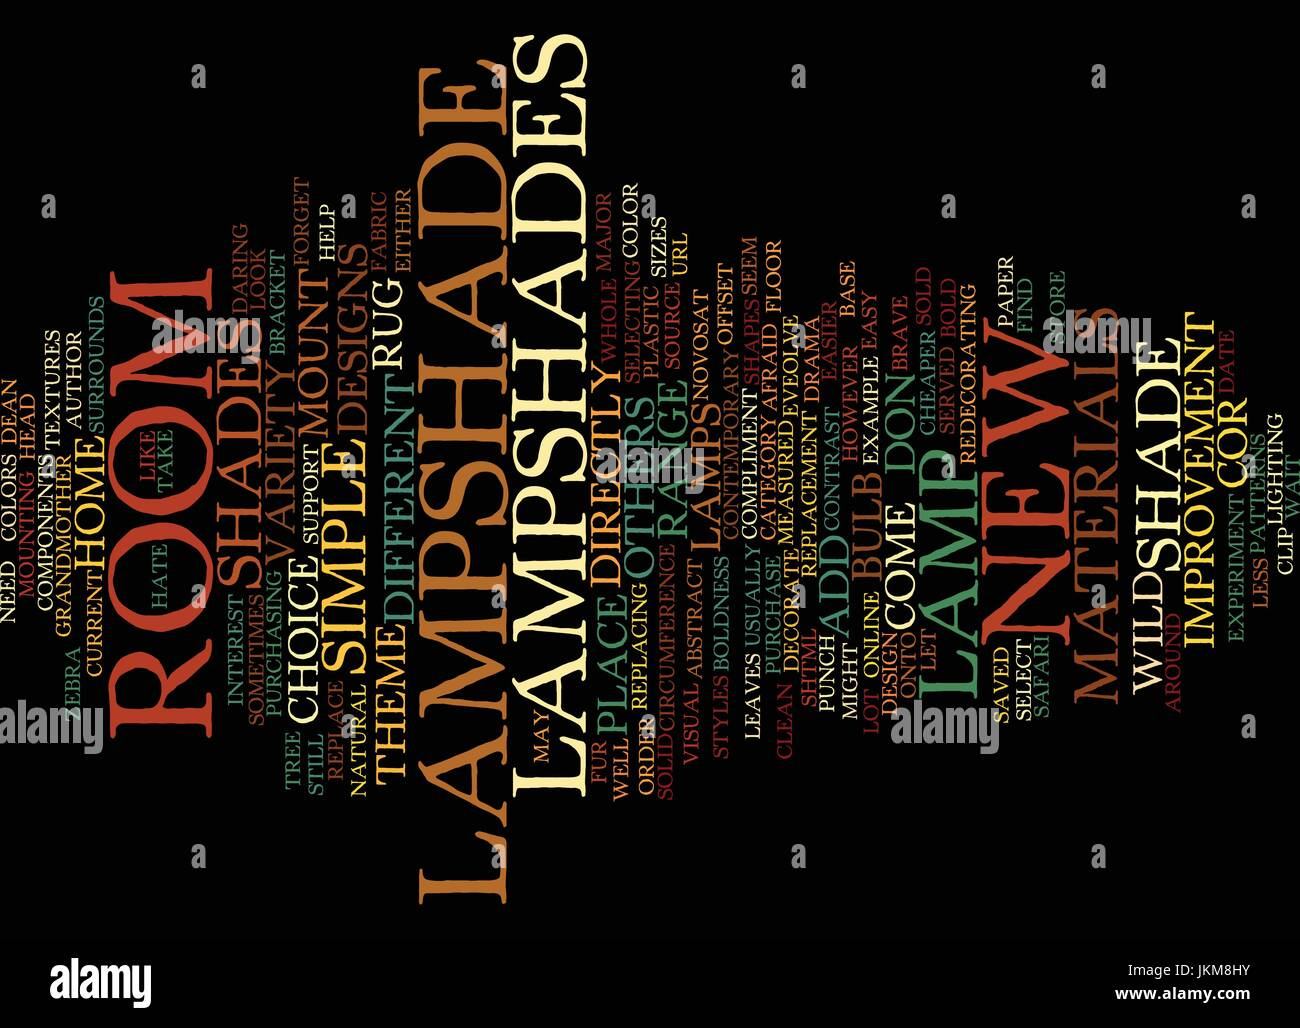 Lamp Shades Decorate A Room Text Background Word Cloud Concept Stock